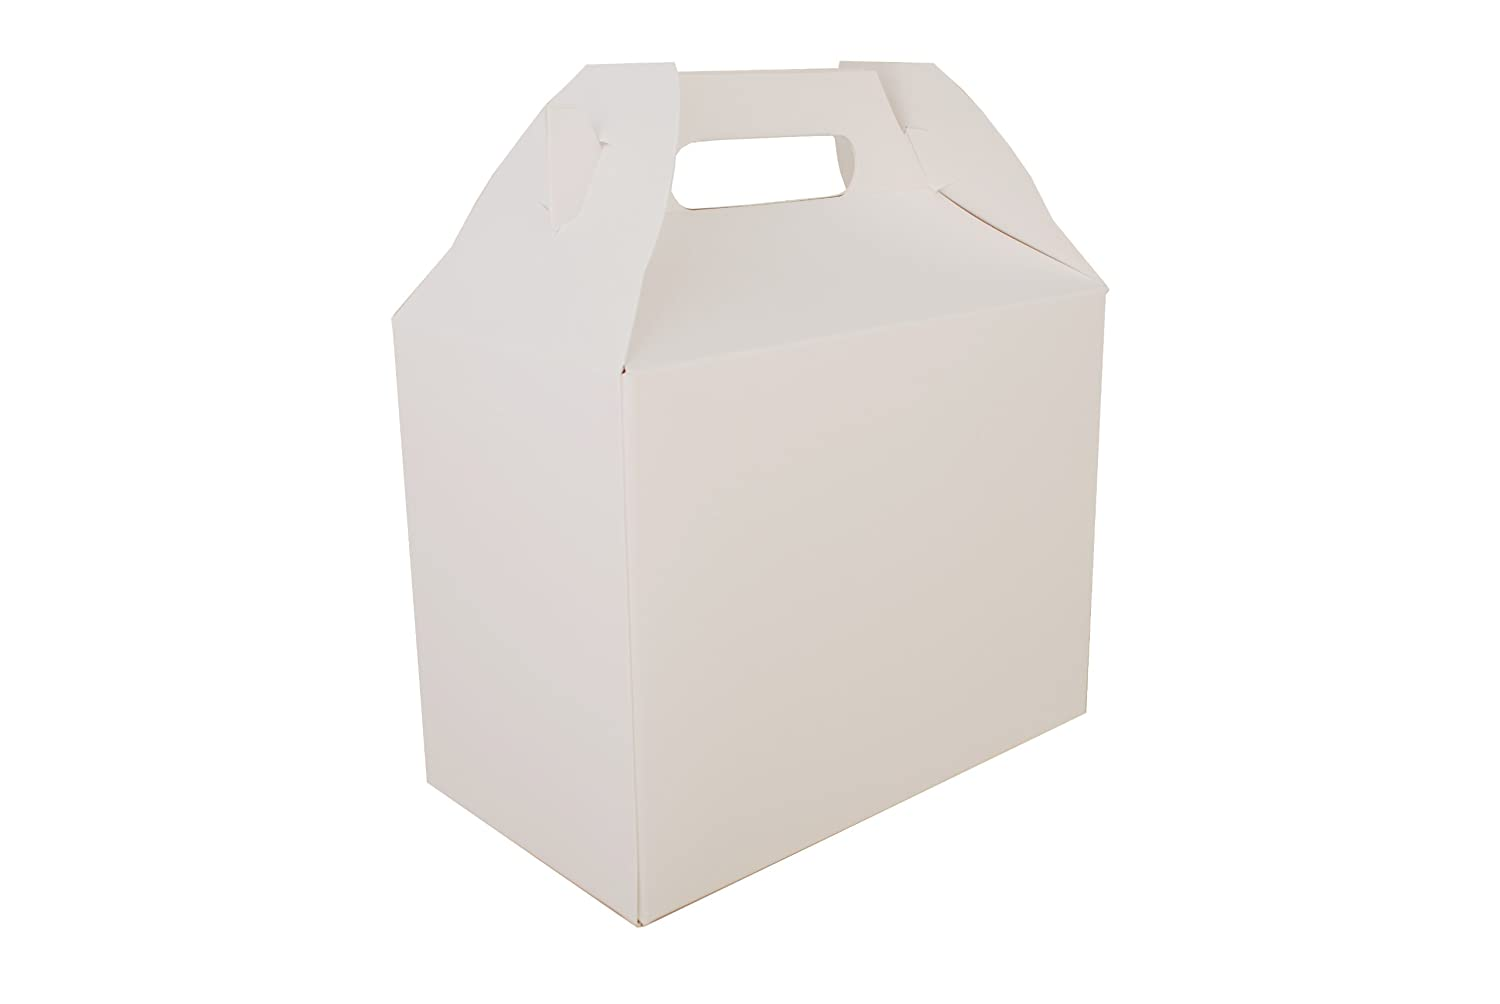 Southern Champion Tray 2709 Paperboard White Large Barn Style Carry Out Box, 10 lbs Capacity, 8-7/8